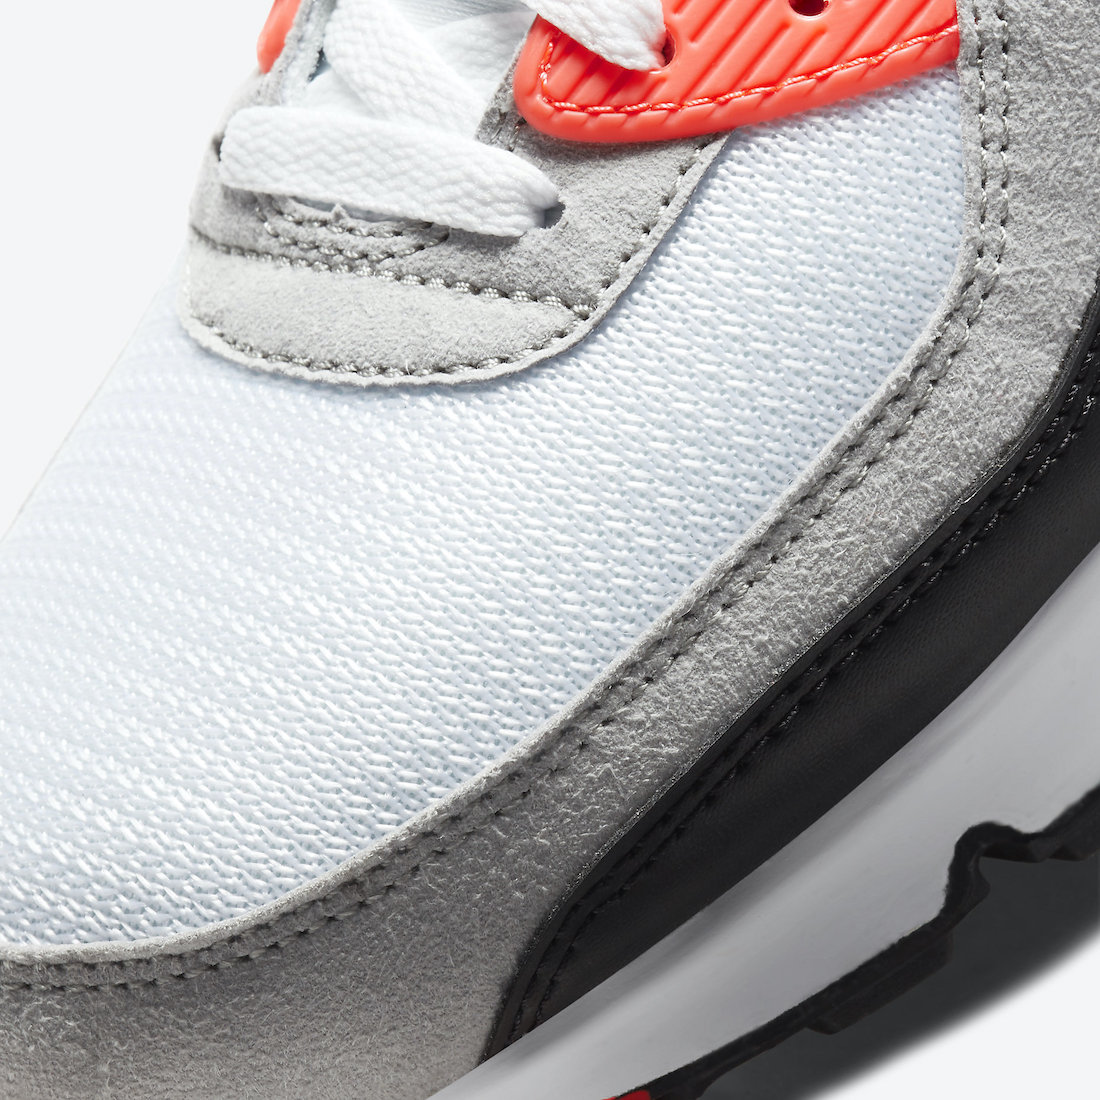 Nike-Air-Max-90-Infrared-CT1685-100-Release-Date-6